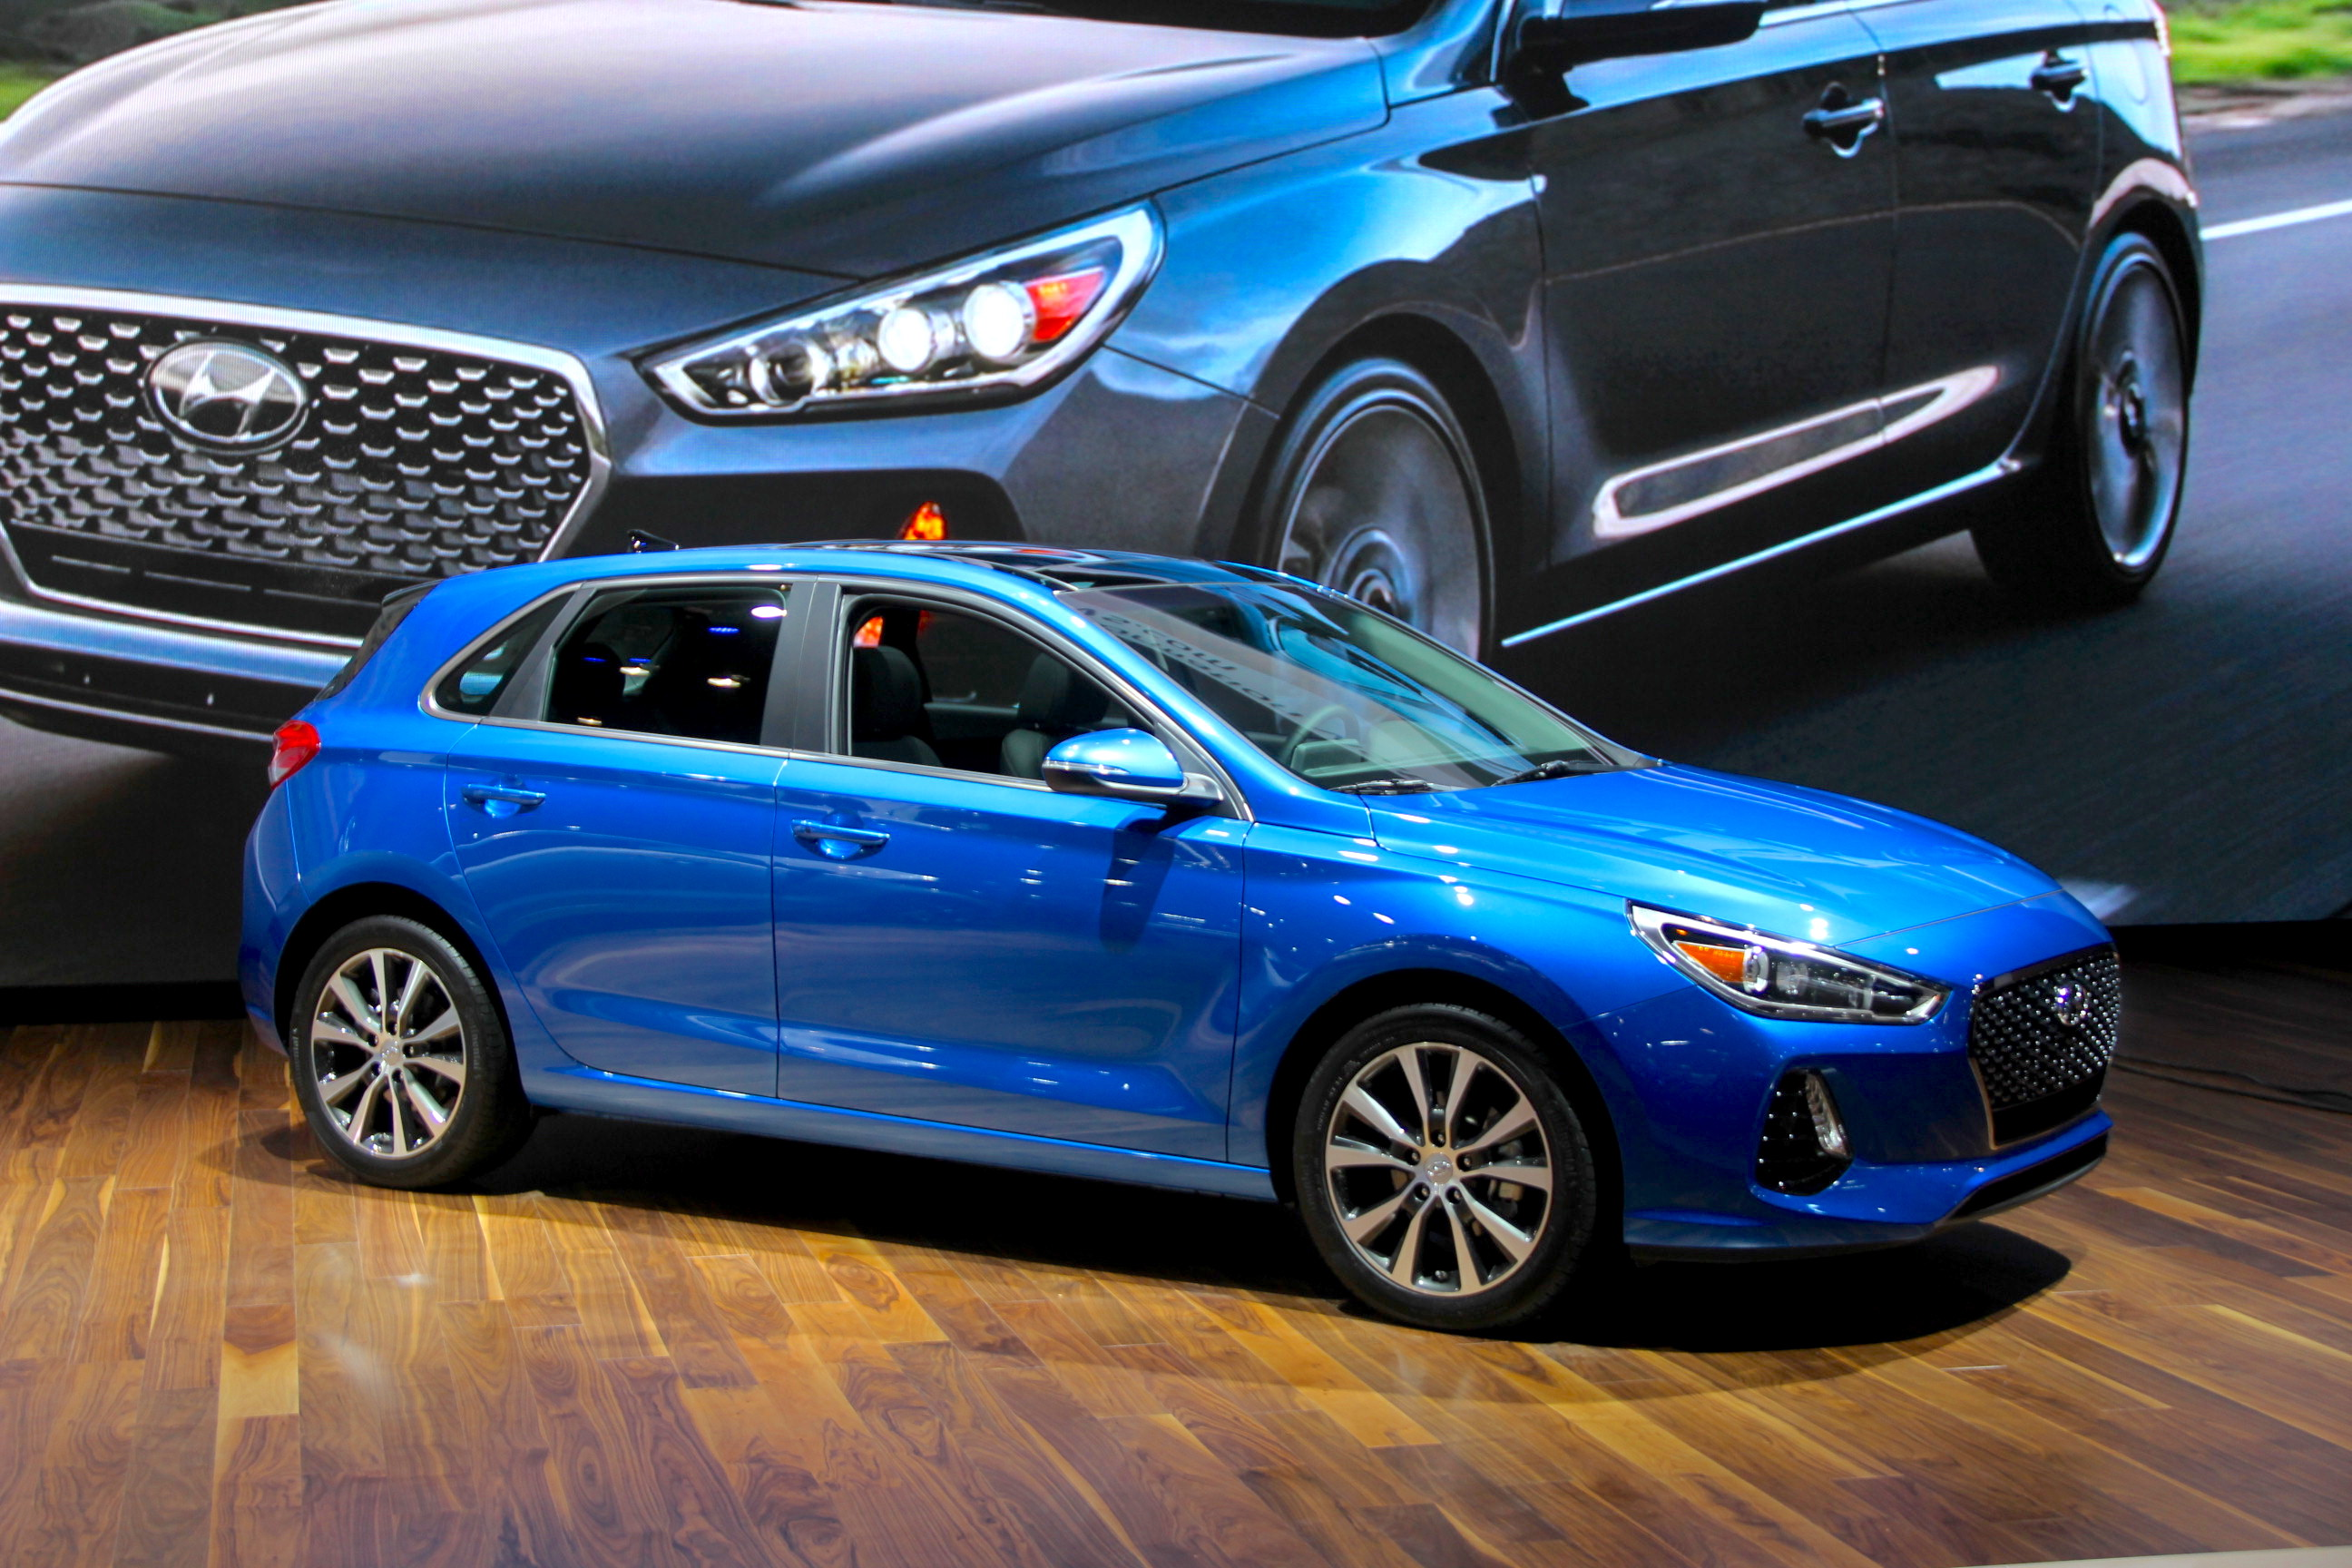 Hyundai Accent 2018 Hatchback | Best new cars for 2018